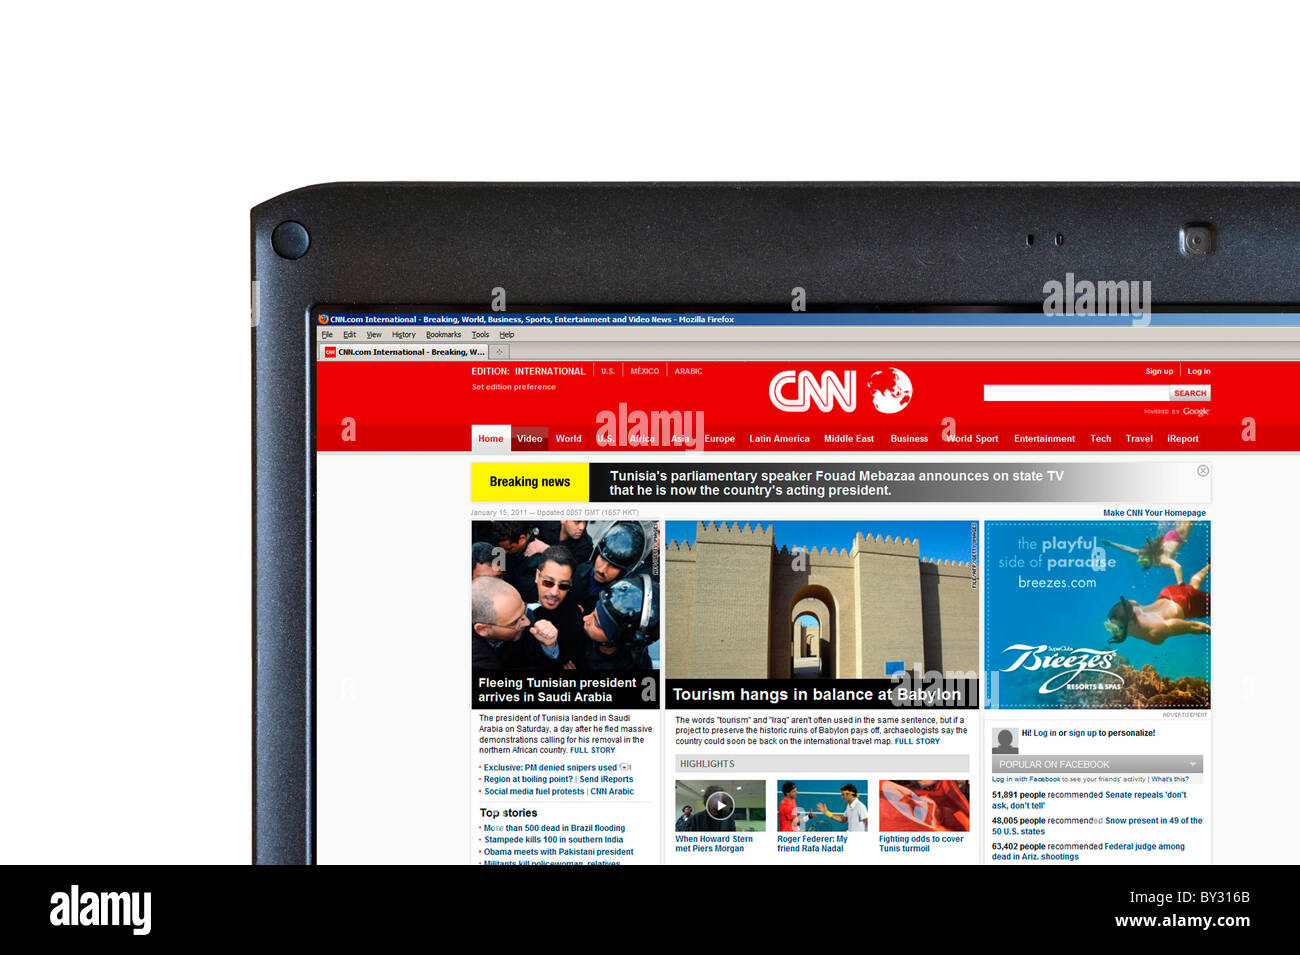 Browsing the CNN International News website on a Laptop